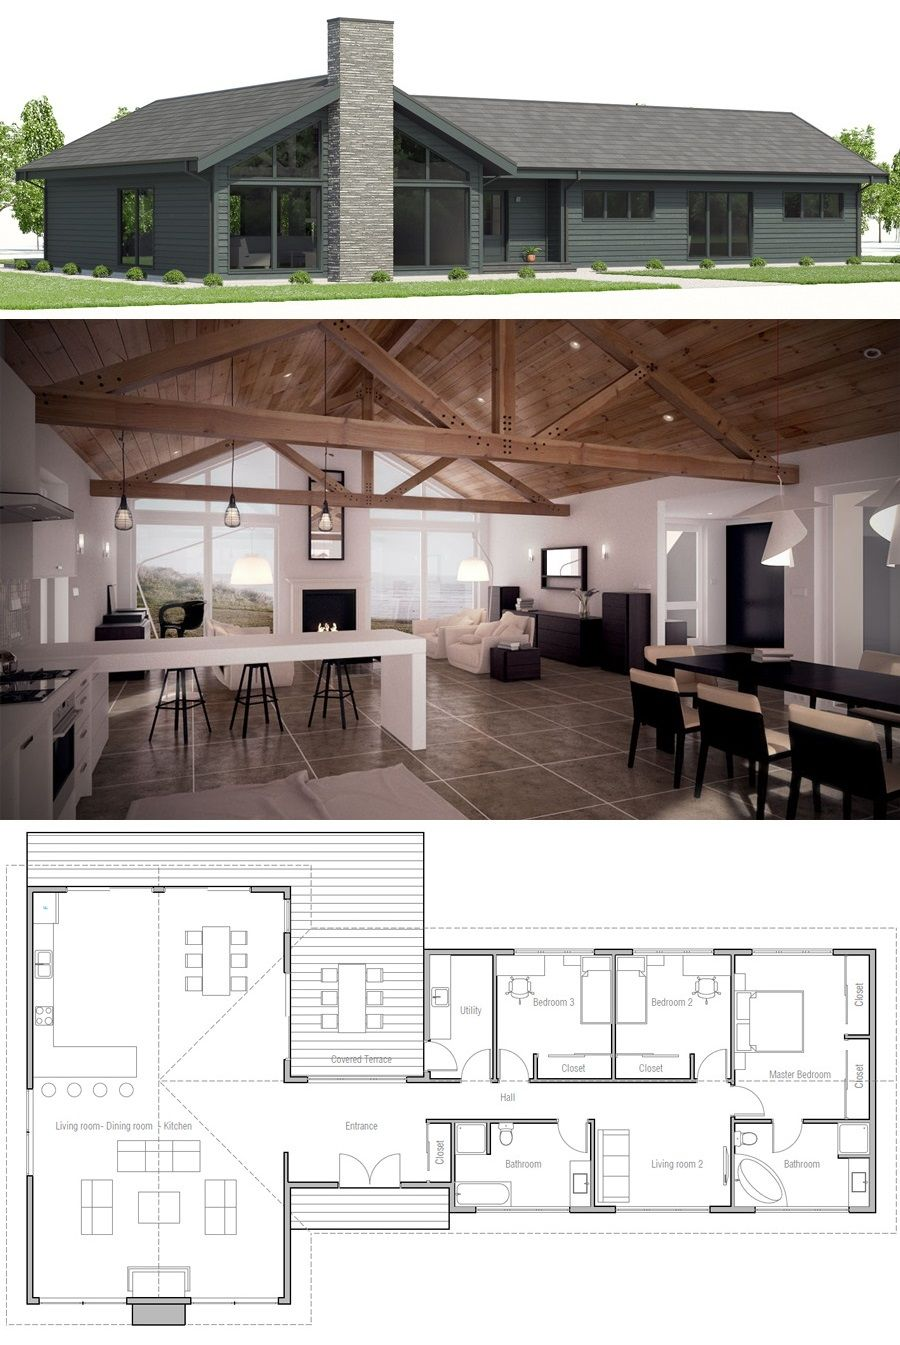 ff05c2a519d990a3b98986236364ed1a - View Small House Design Archdaily Pictures